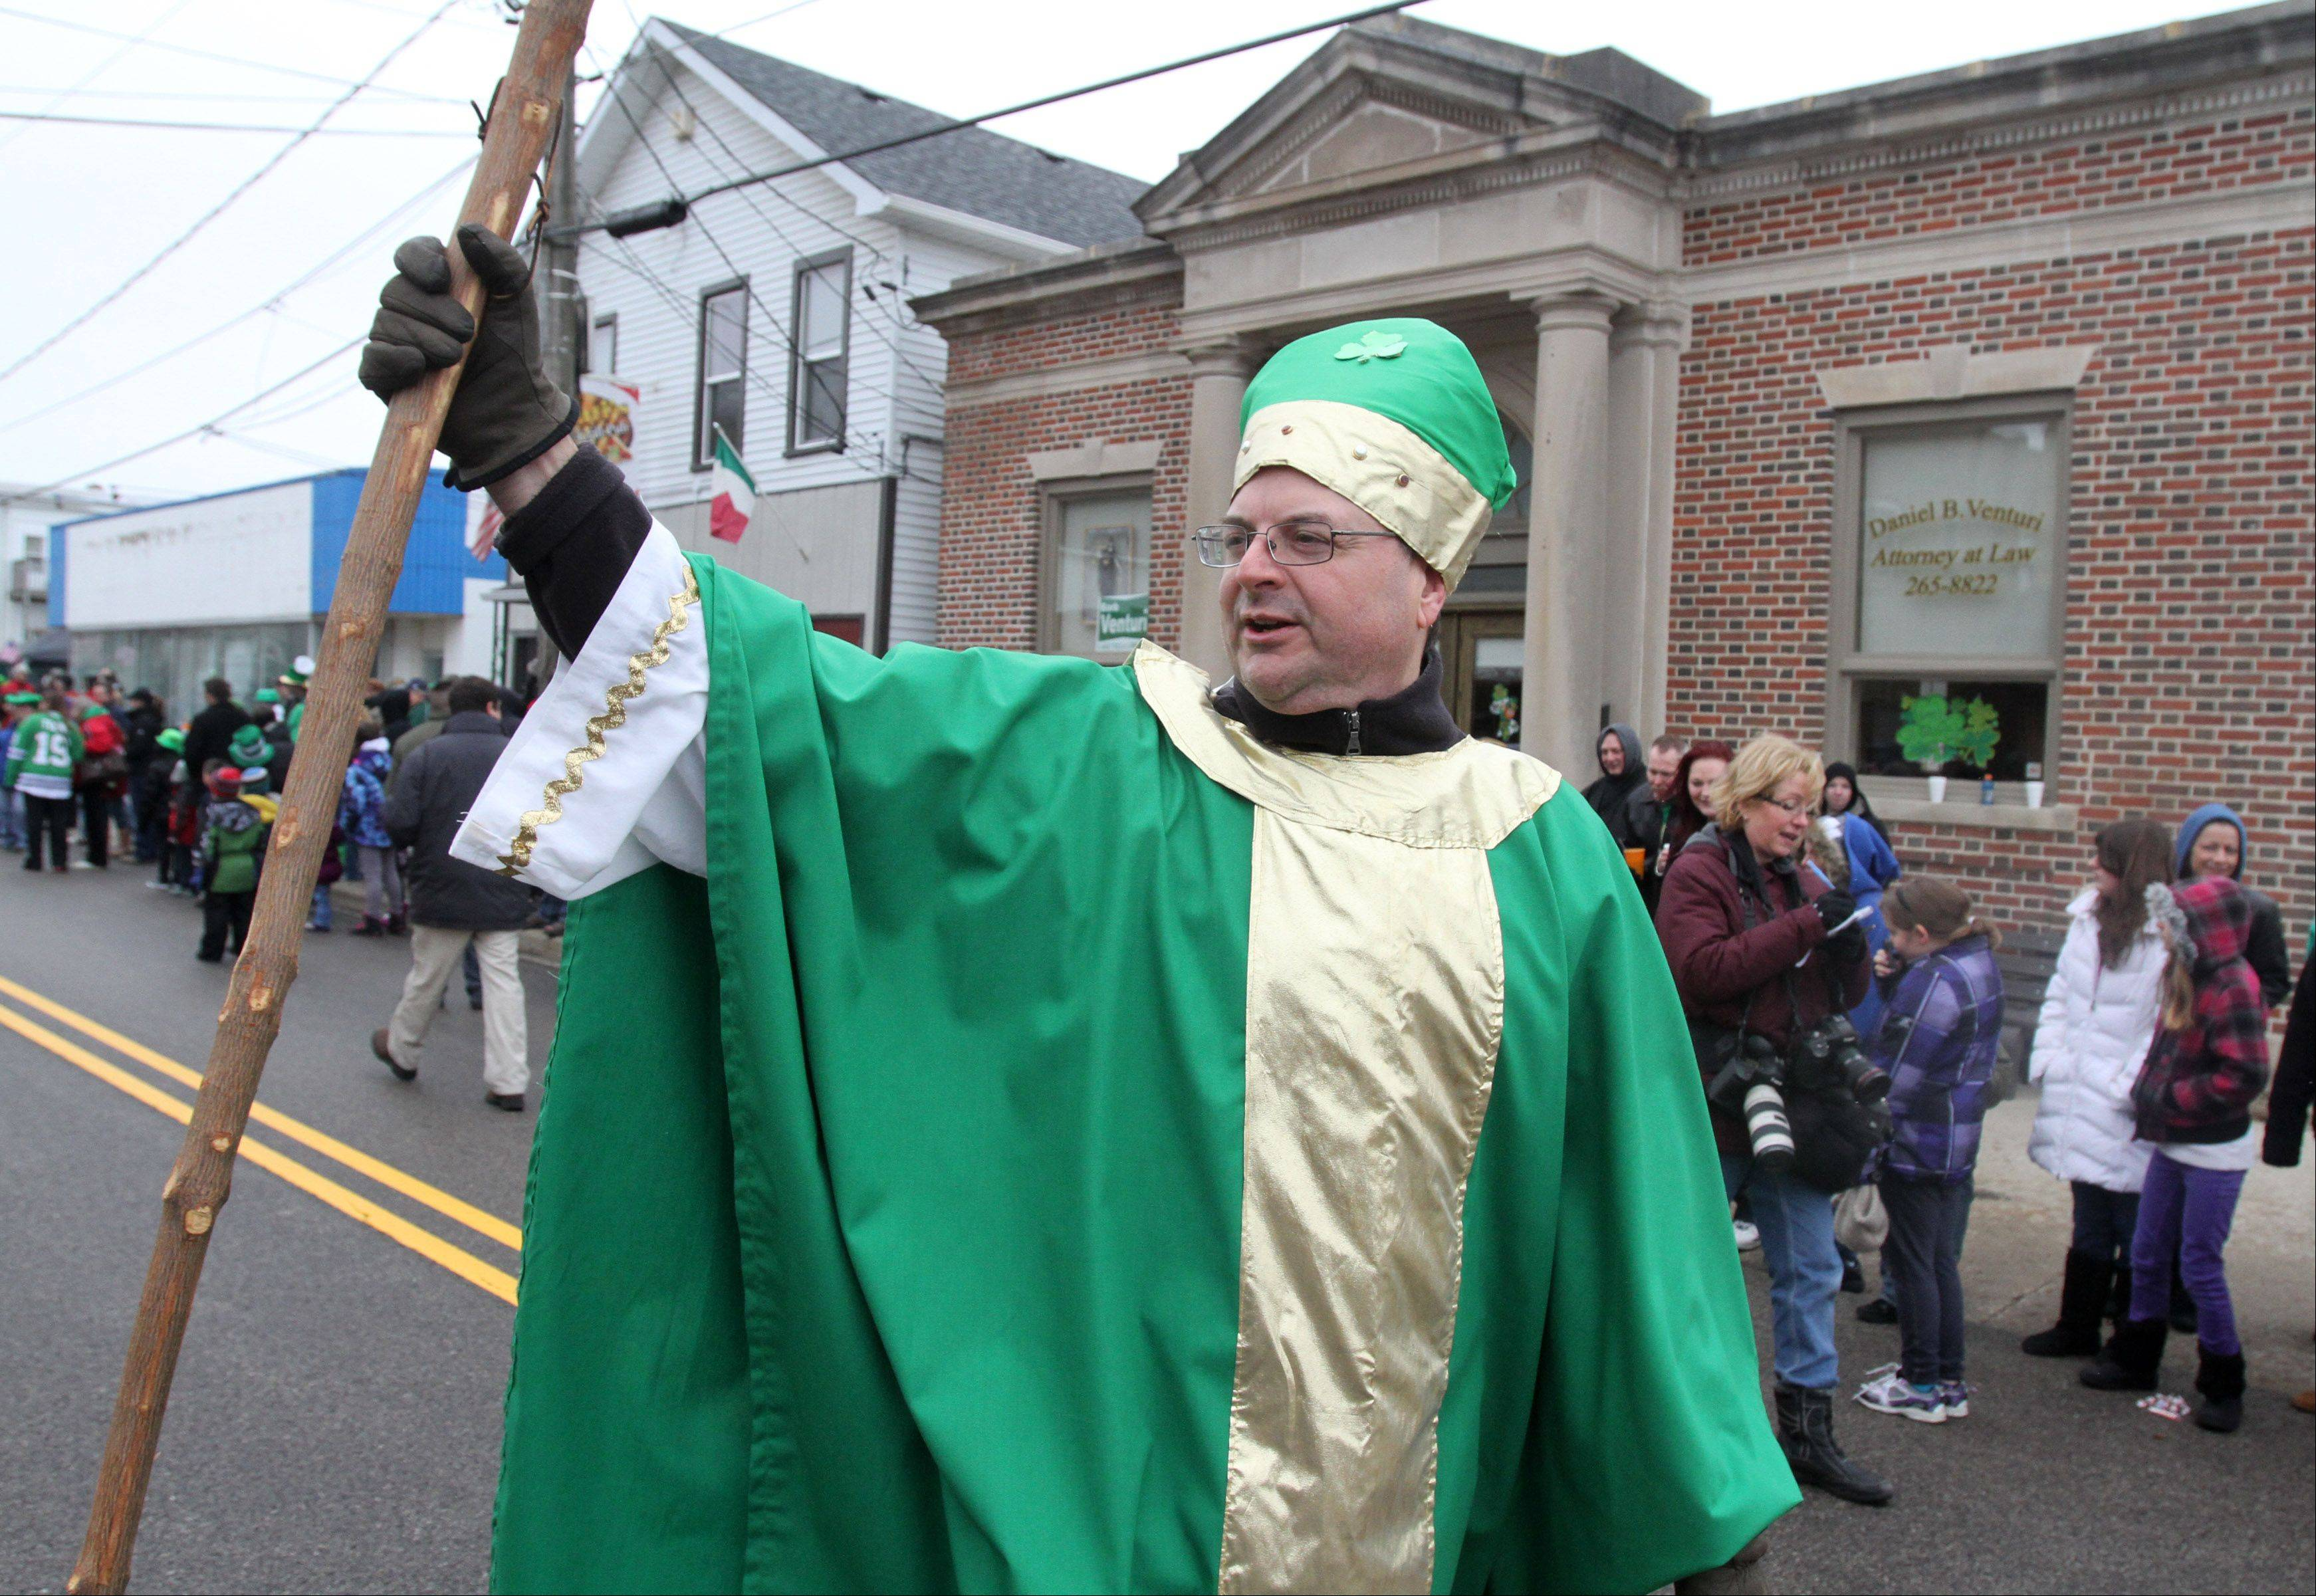 Jim Barnowski of Lake Villa -- dressed as St. Patrick himself -- marches in the Lake Villa St. Patrick's Day parade on Saturday.